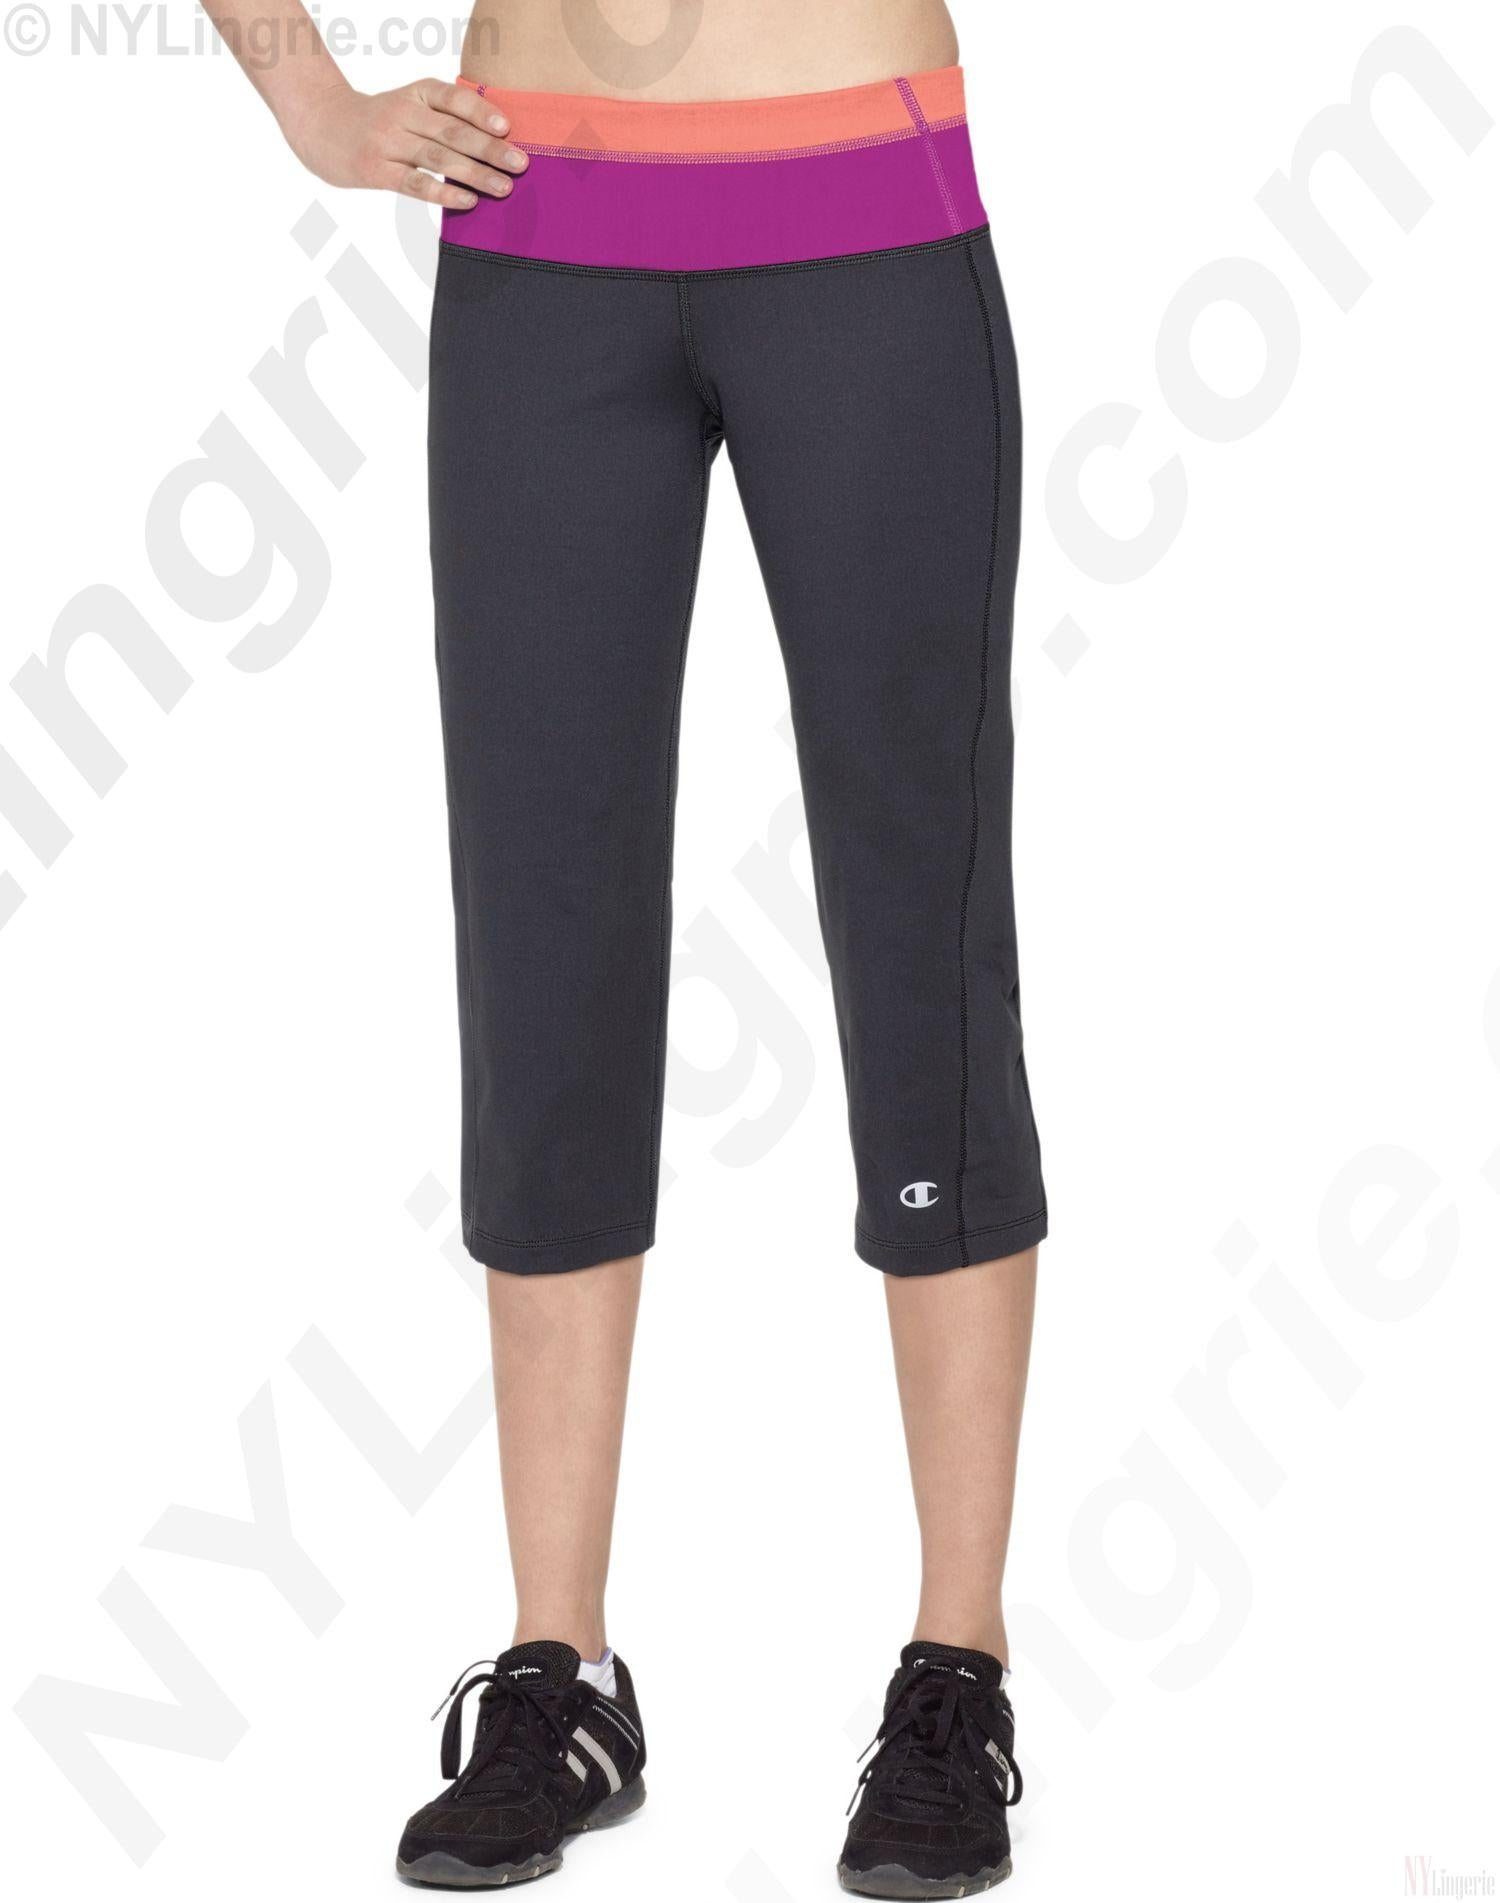 183c5c8206b0 8800 - Champion Women s POWERTRAIN Absolute Workout Capri – NY Lingerie